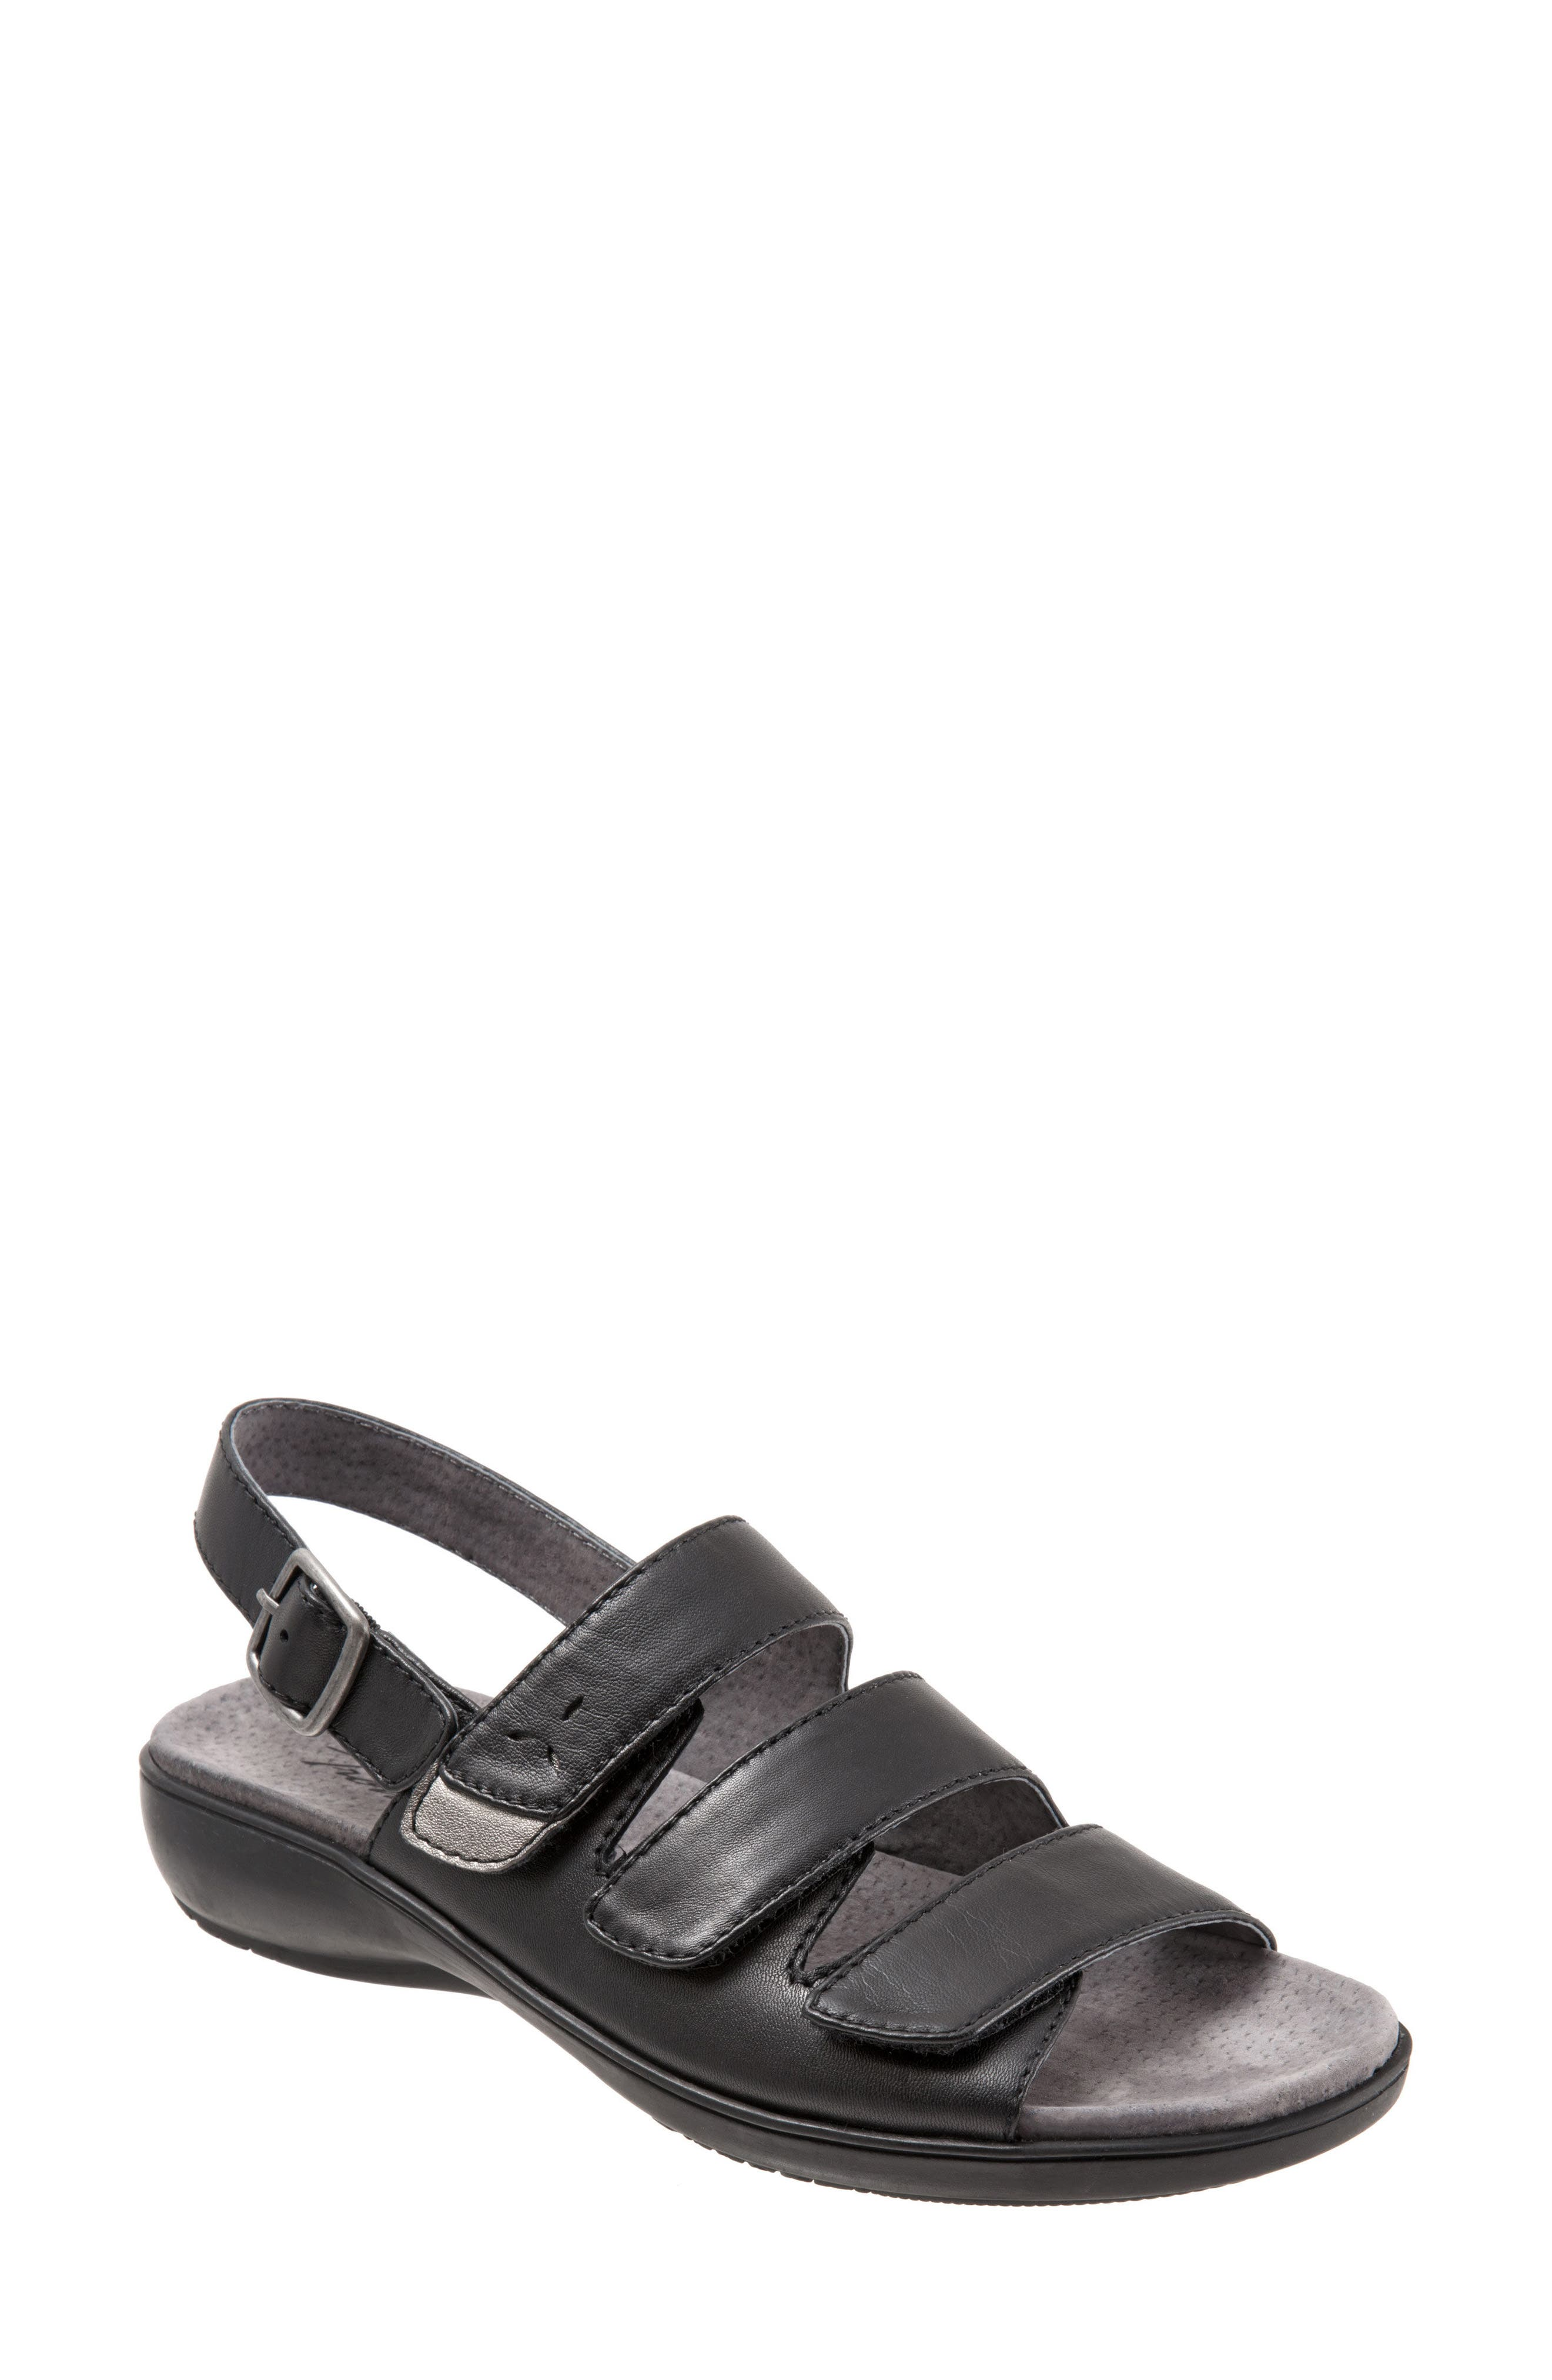 Kendra Strappy Slingback Sandal,                         Main,                         color, Black Leather